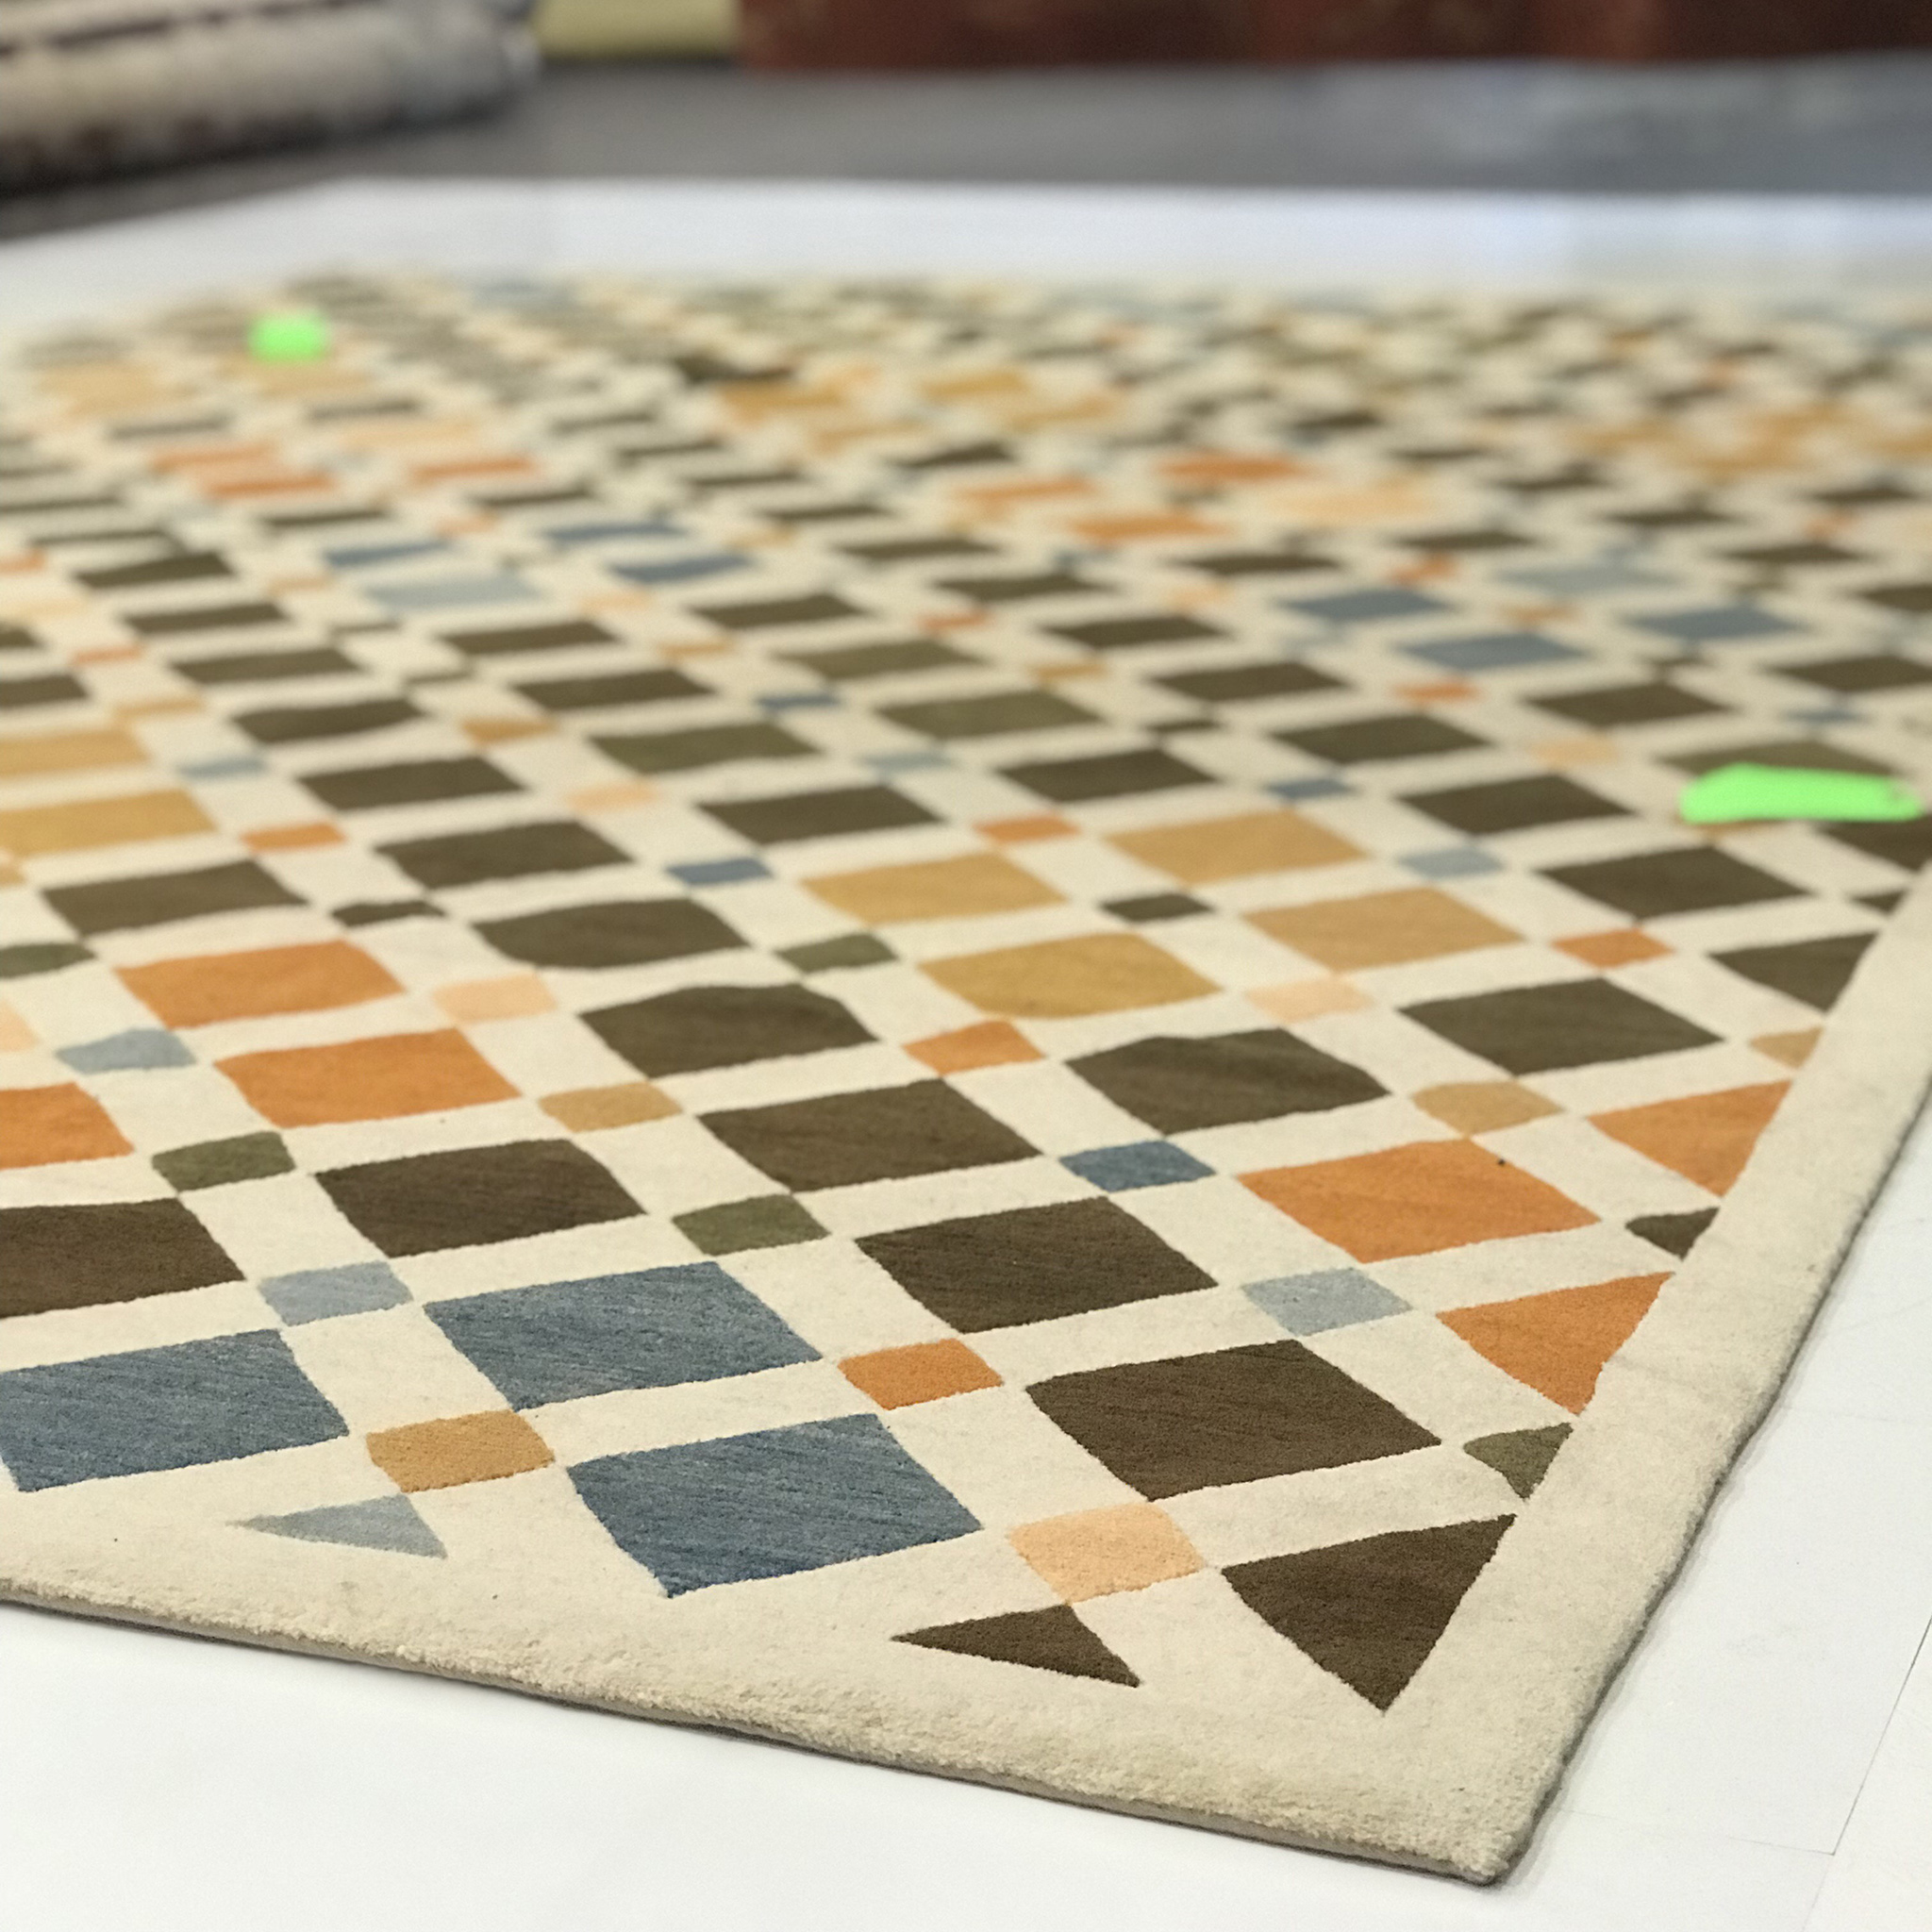 A trusted cleaner will thoroughly assess a rug or carpet prior to cleaning. Here you see 'Tile' laid flat for examination. The green tags were attached prior to shipment in order to show areas requiring extra attention.   Image courtesy of Weaver & Loom.